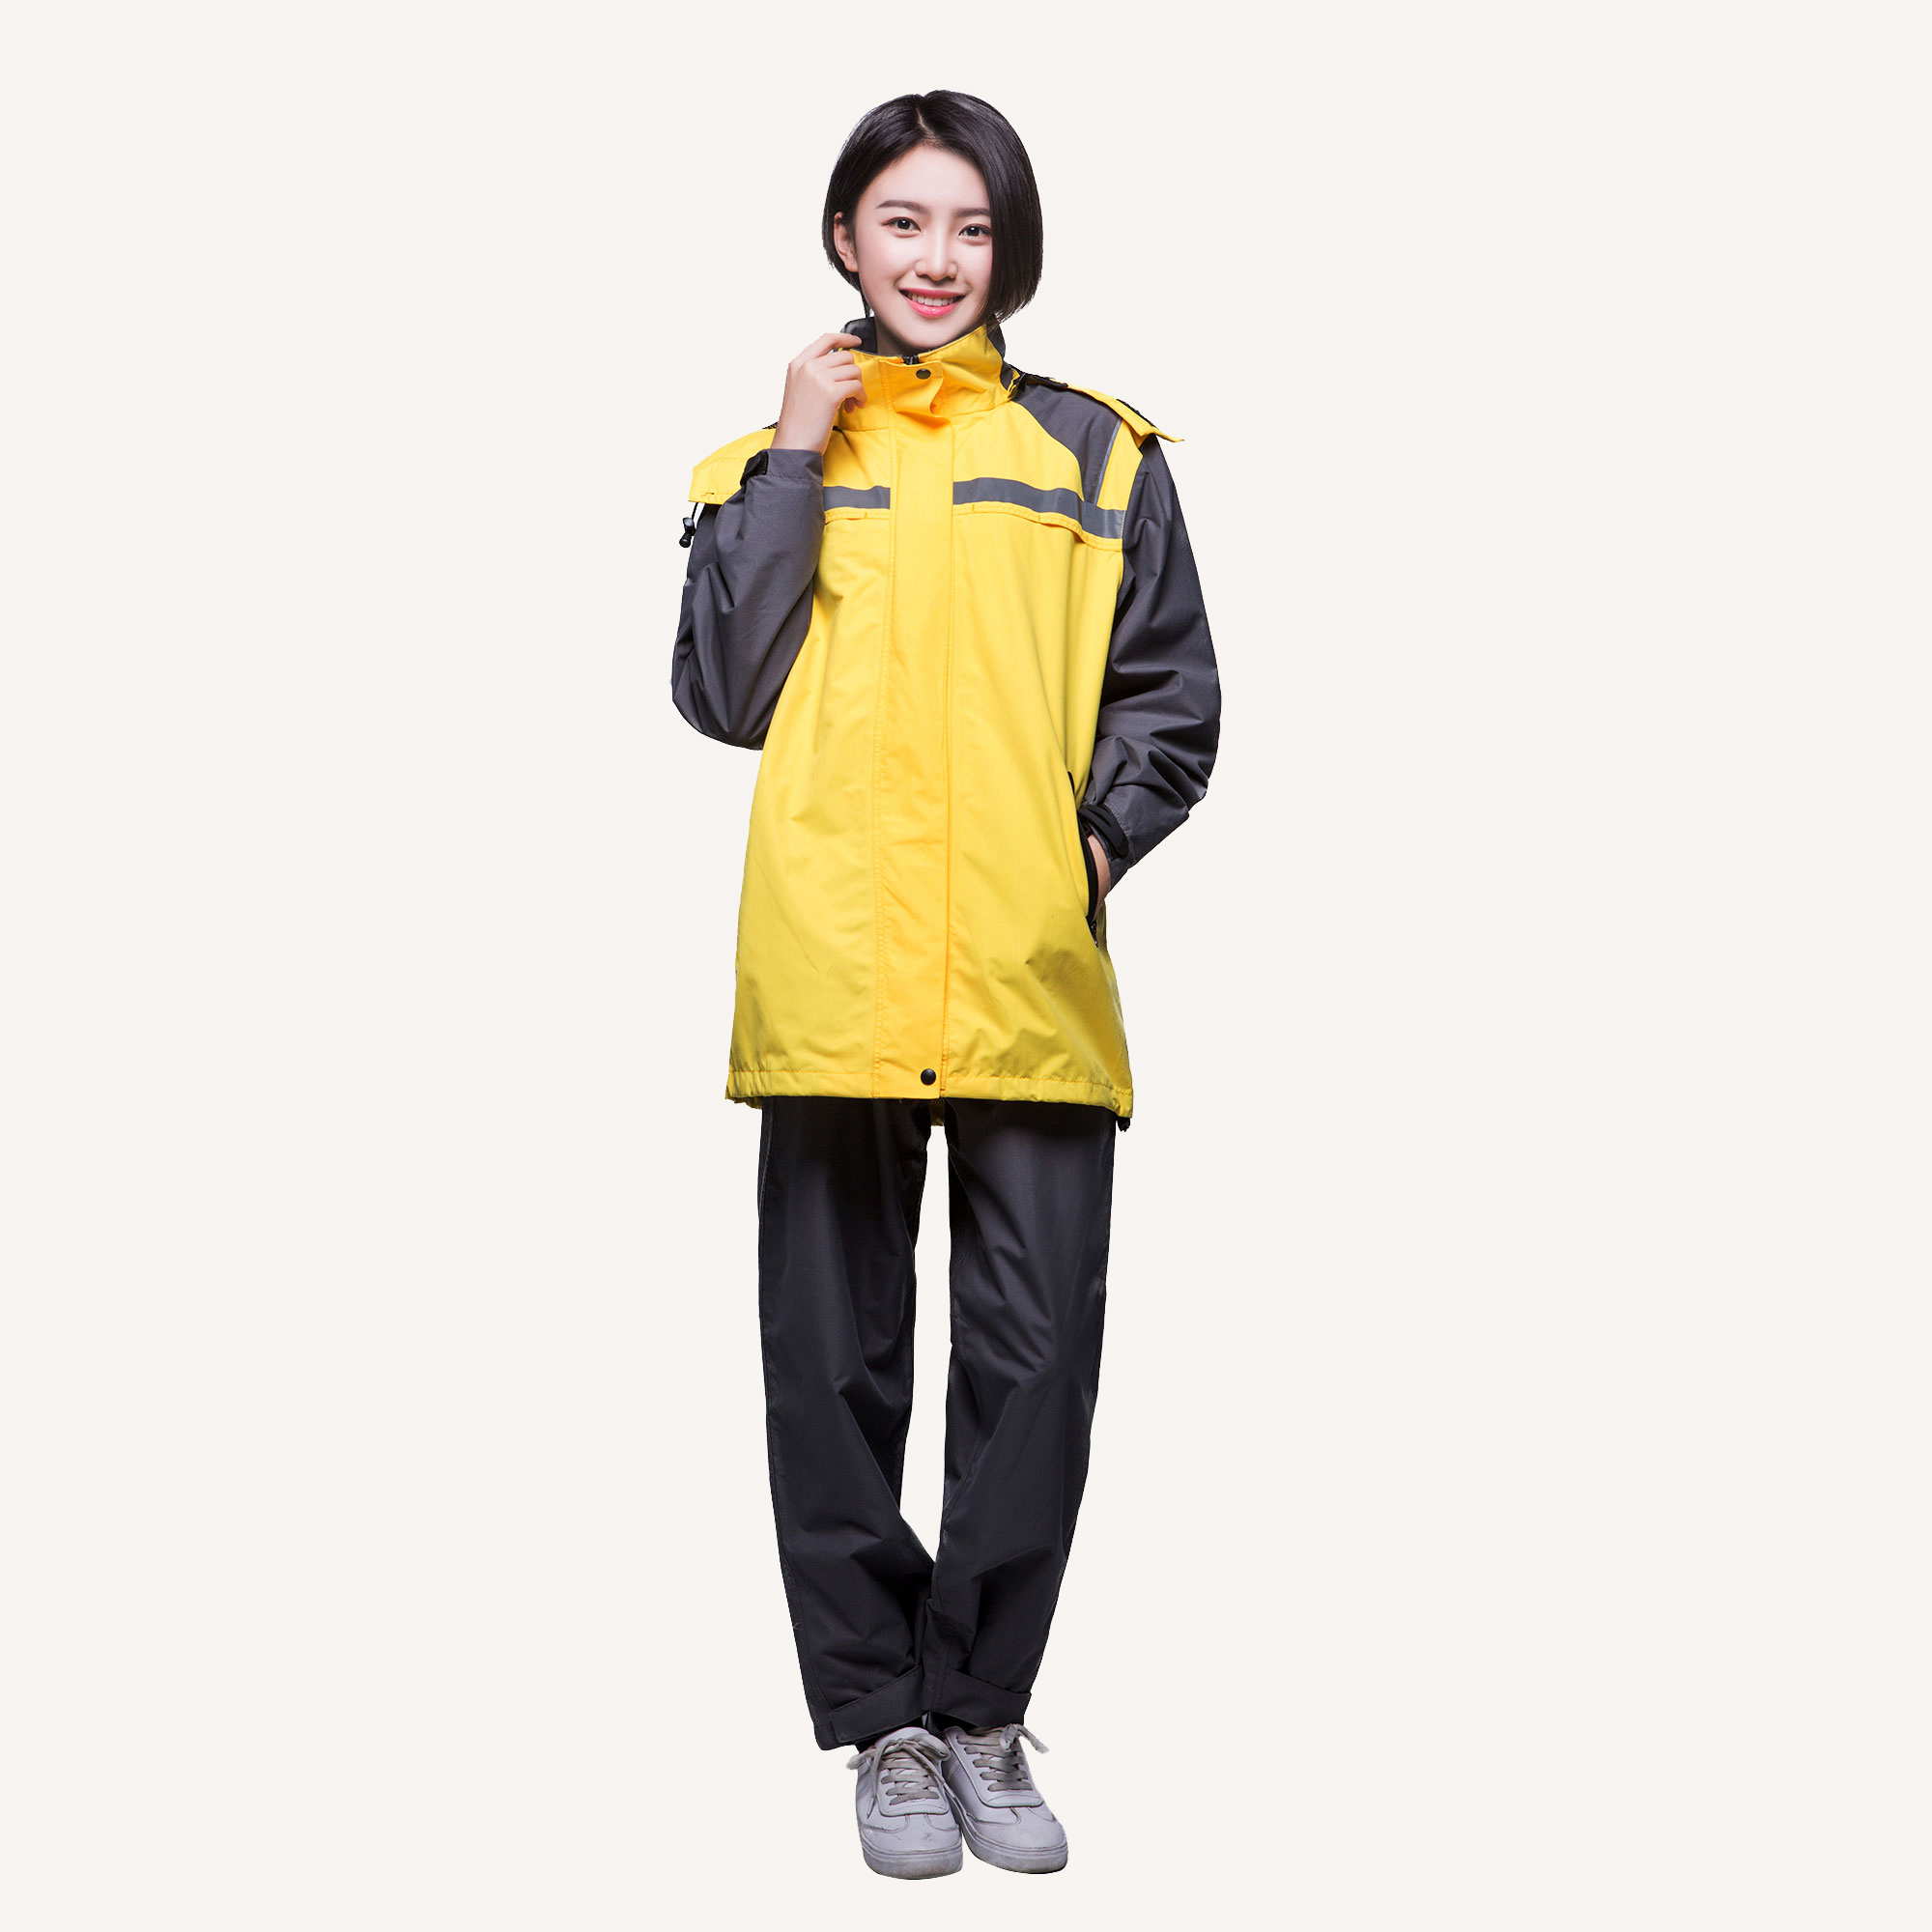 7748 Waterproof Sports Suit Womens Rain Jacket